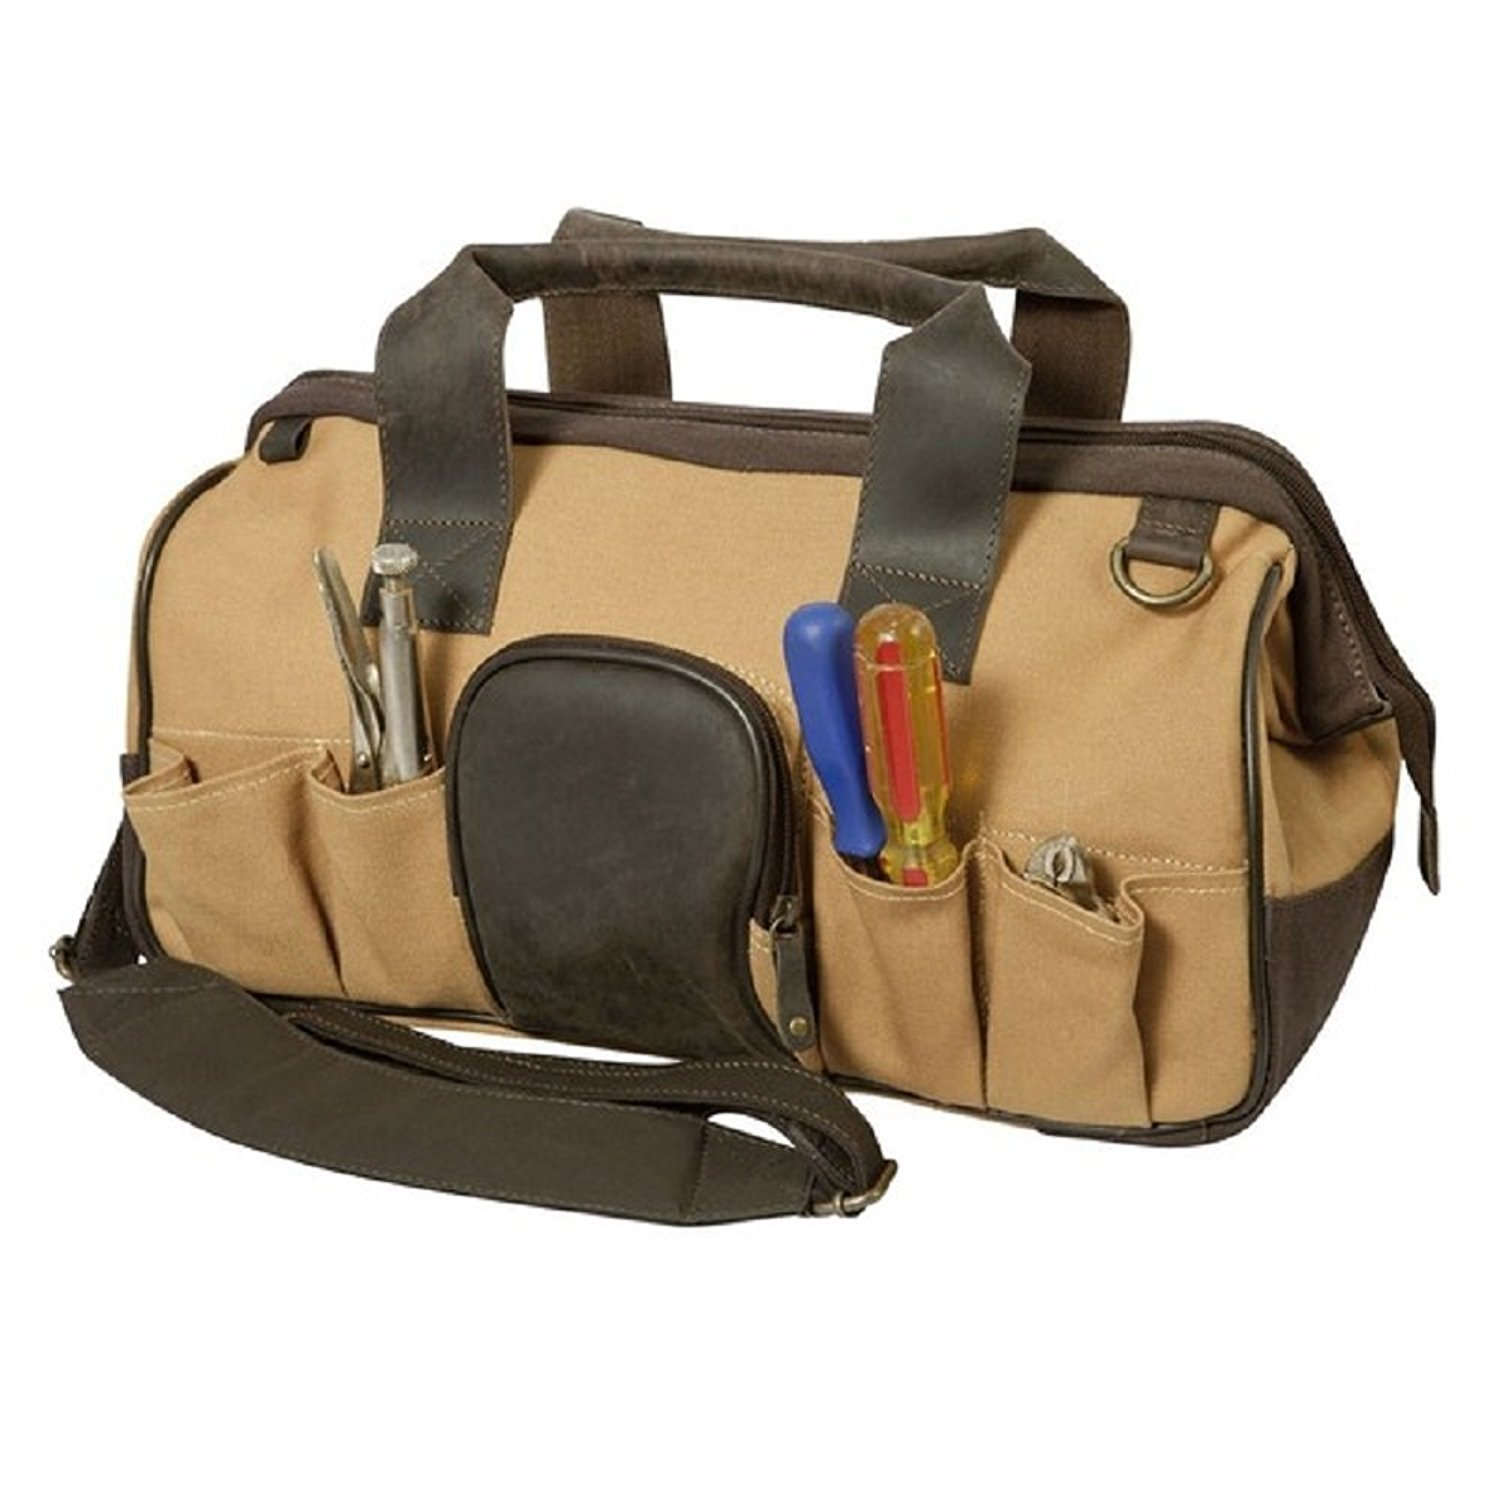 Outback Canvas Leather Open Mouth Tool Bag Contractor Briefcase by DSOS (Image #1)